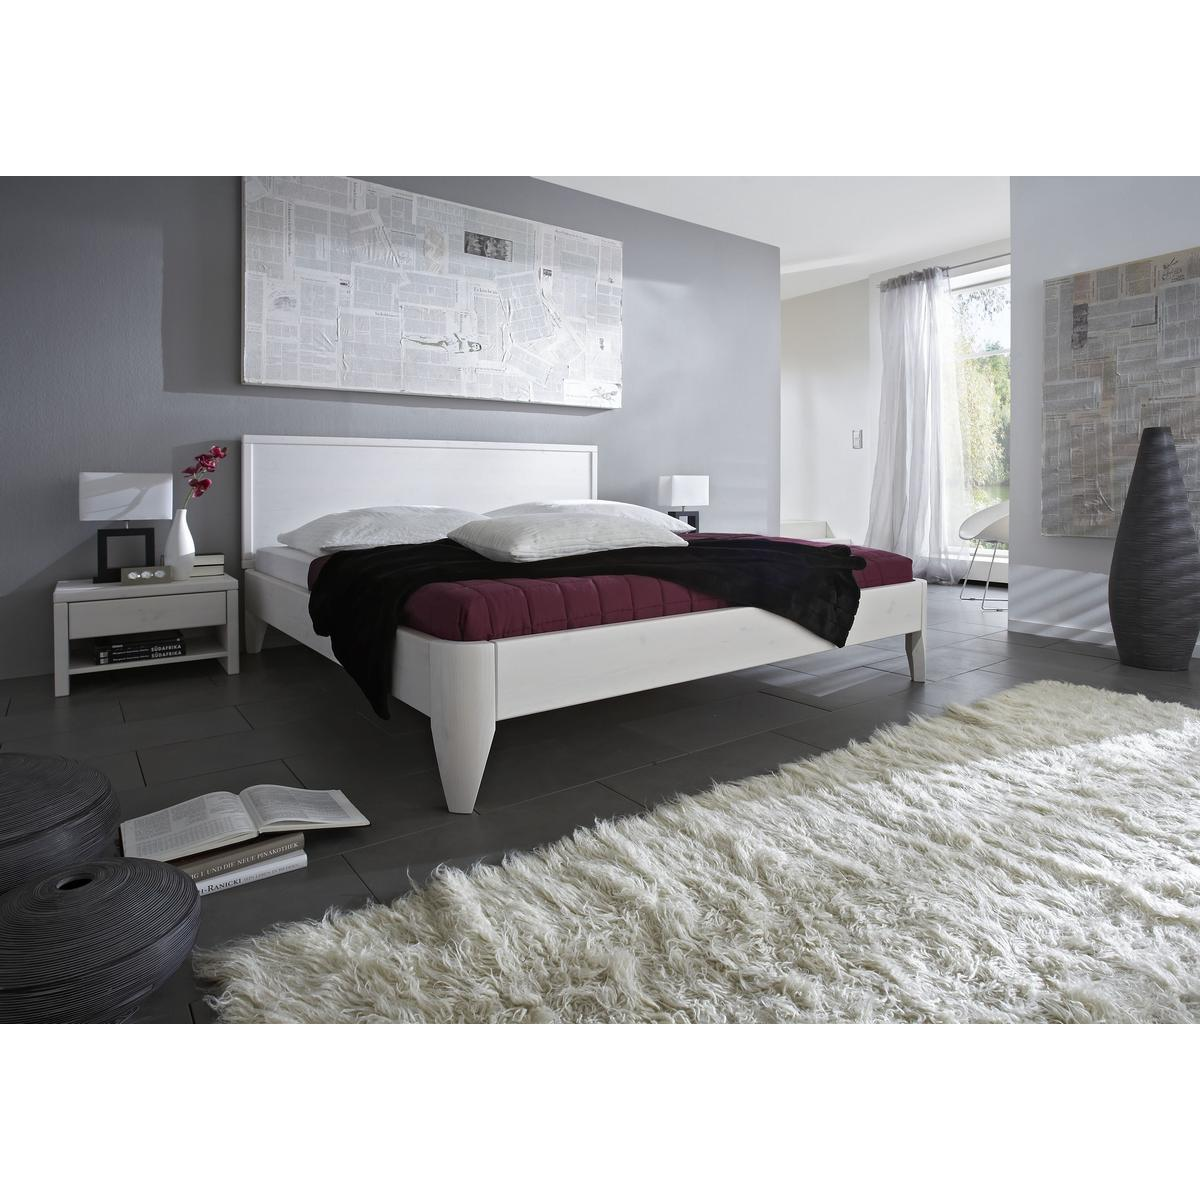 holzbett 160x200 wei m bel ideen innenarchitektur. Black Bedroom Furniture Sets. Home Design Ideas